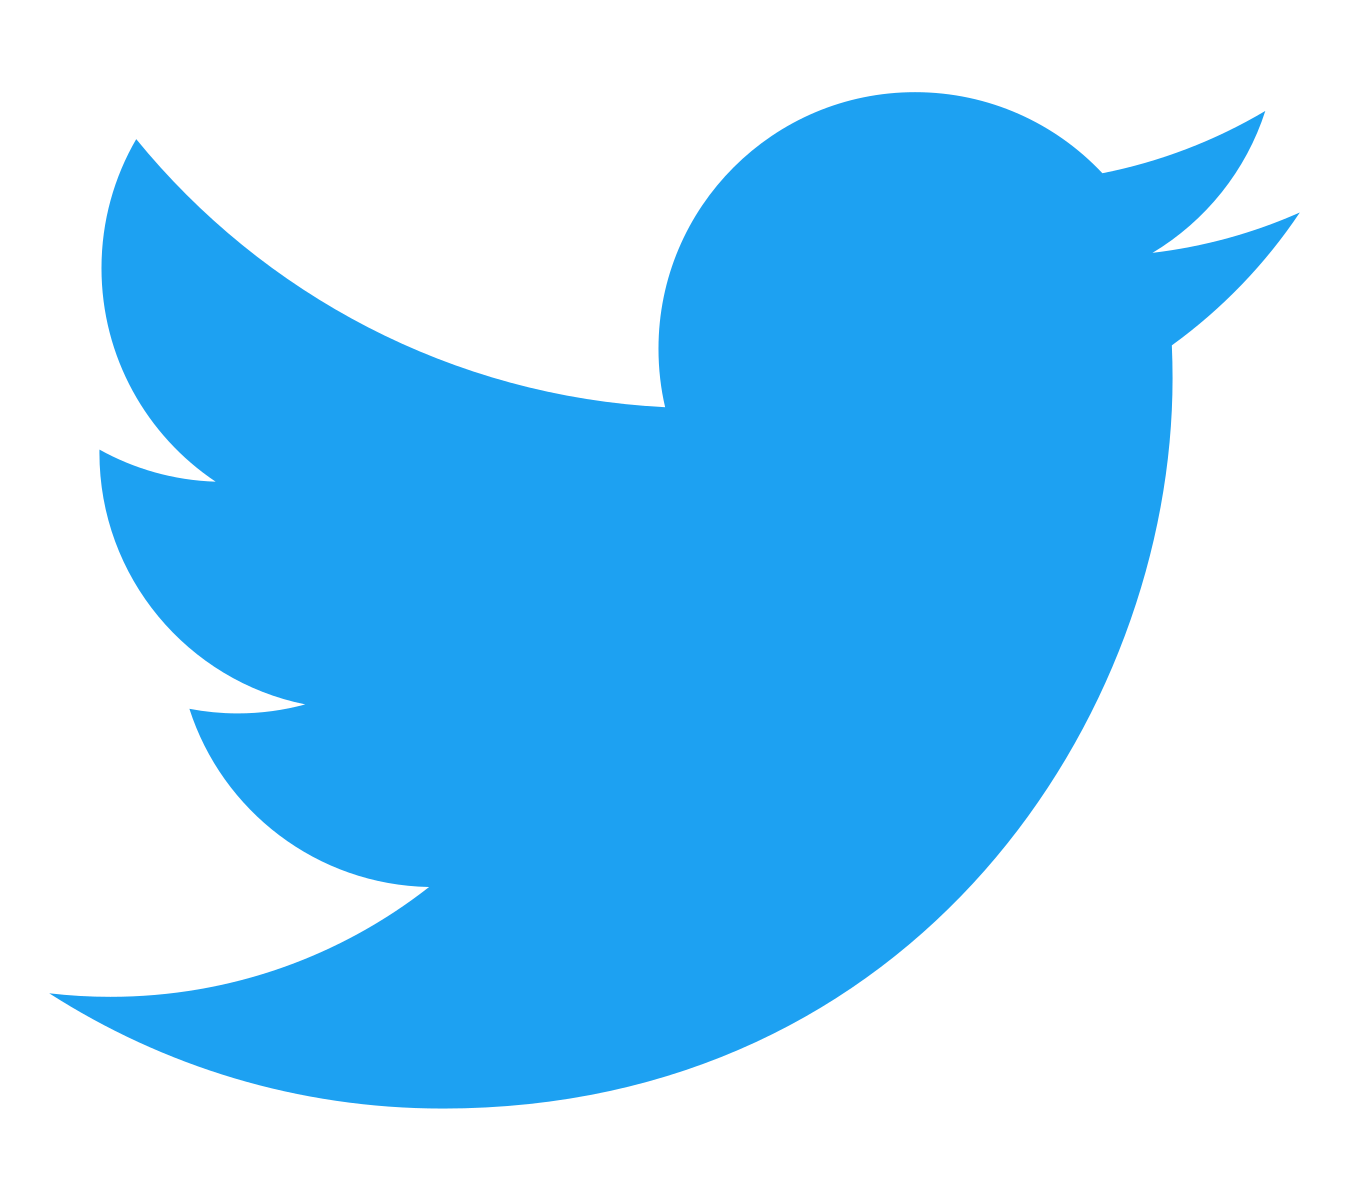 Meaning Twitter logo and symbol | history and evolution